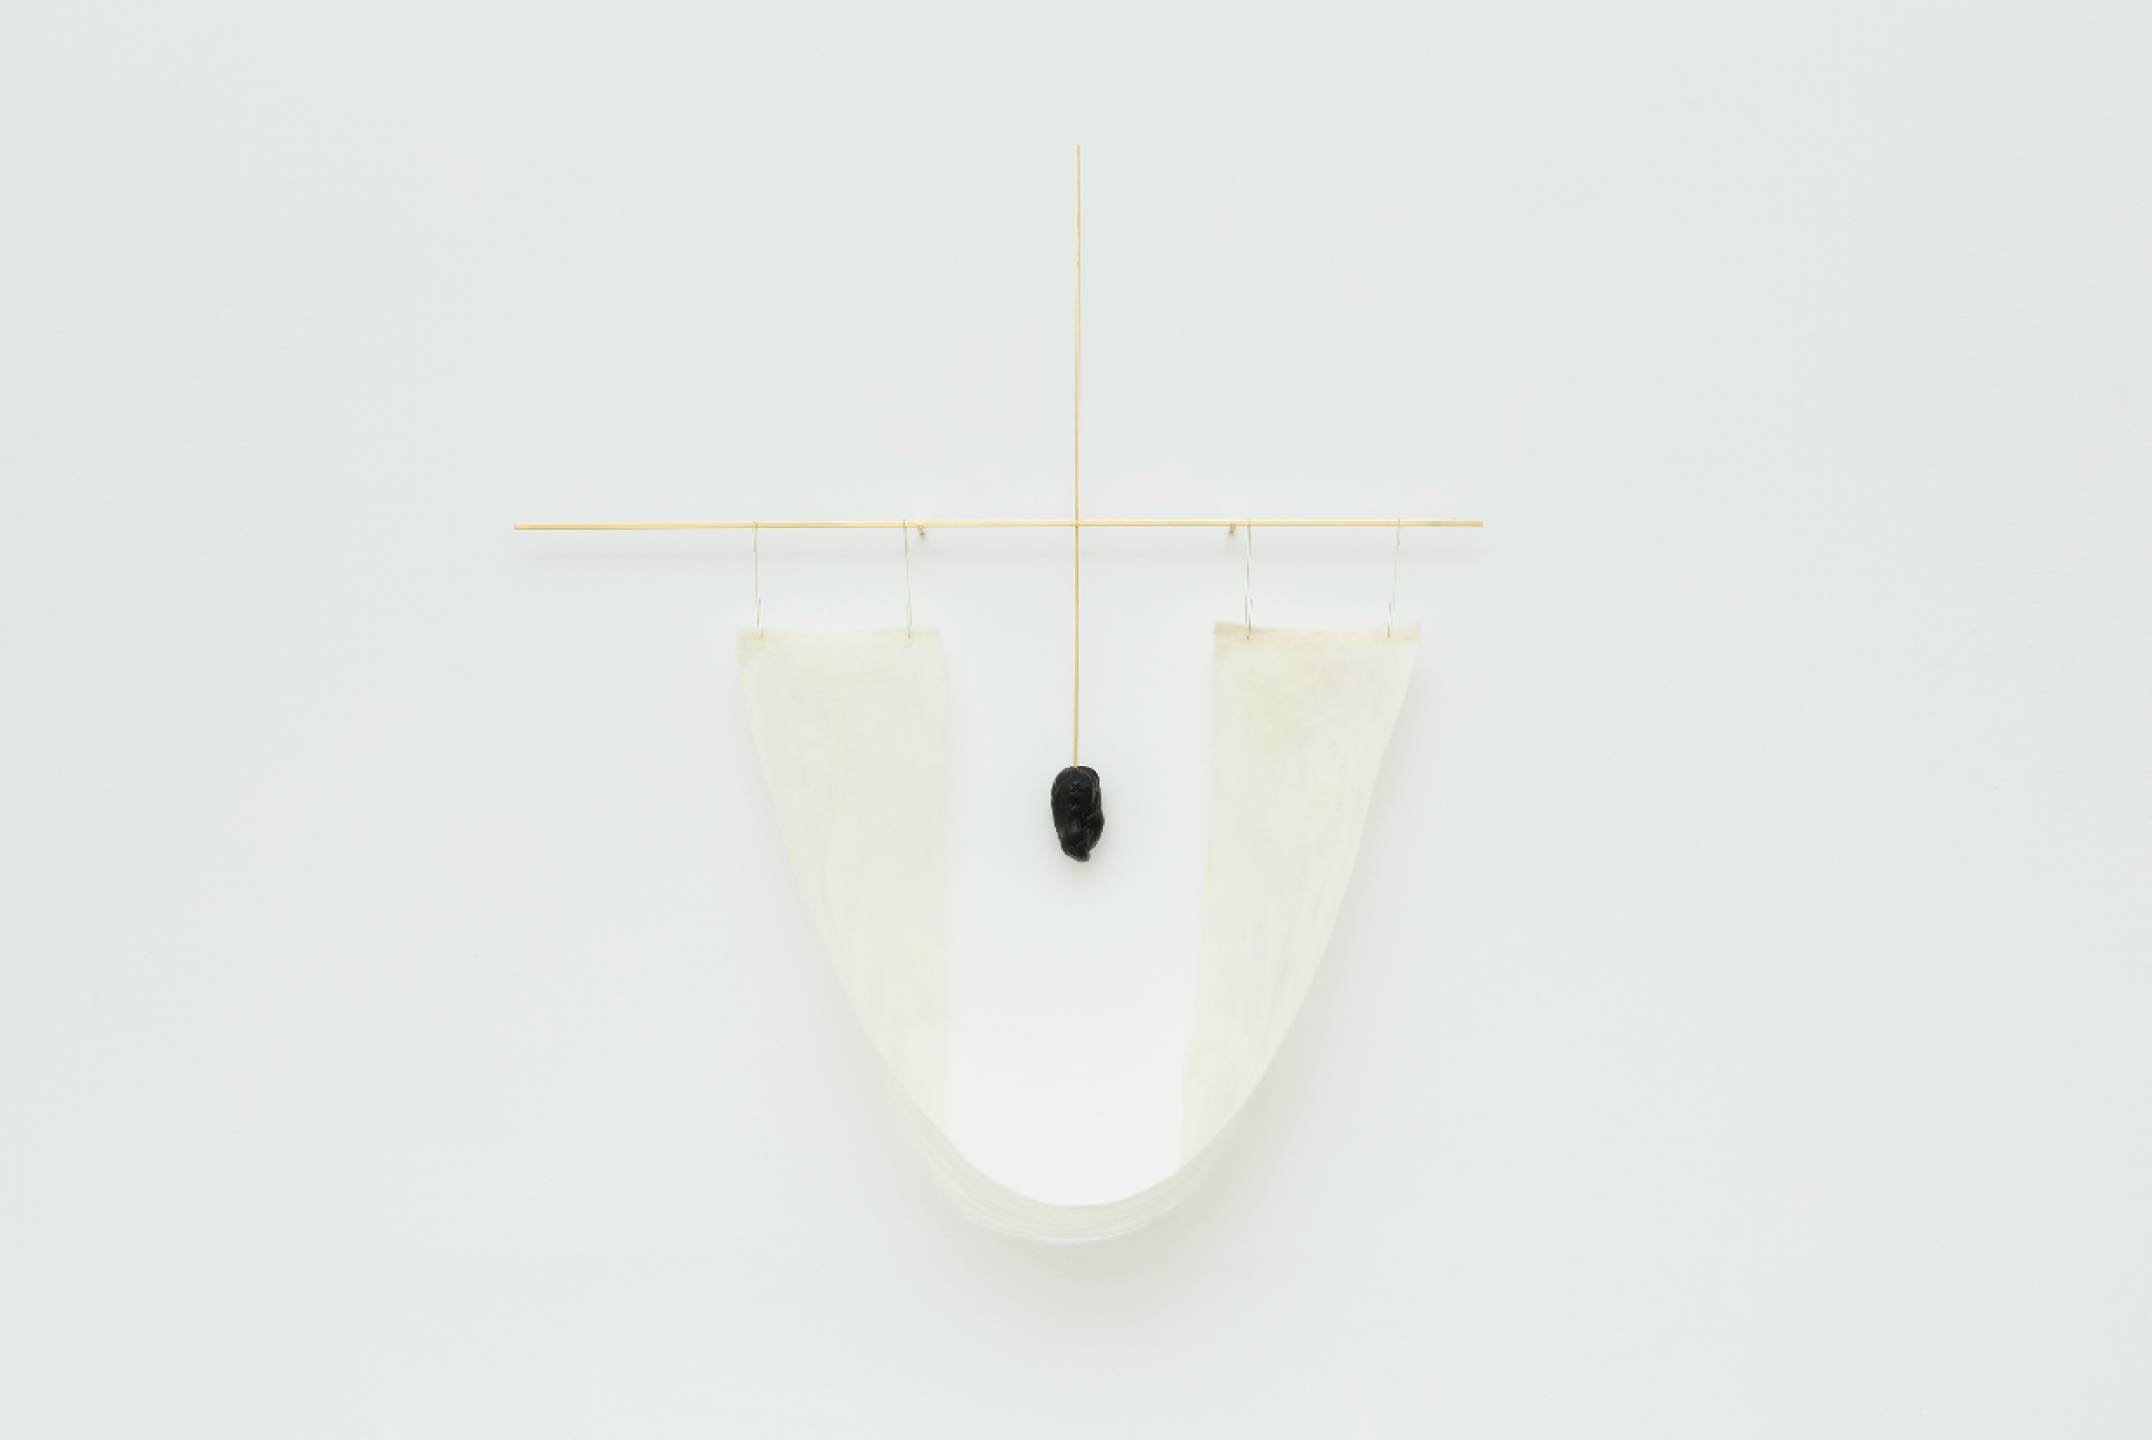 Paloma Bosquê, <em>Cruzeiro com rede</em>, 2017, brass rod, felt of wool and stone of beeswax and pitch, 108 × 99 × 24 cm - Mendes Wood DM